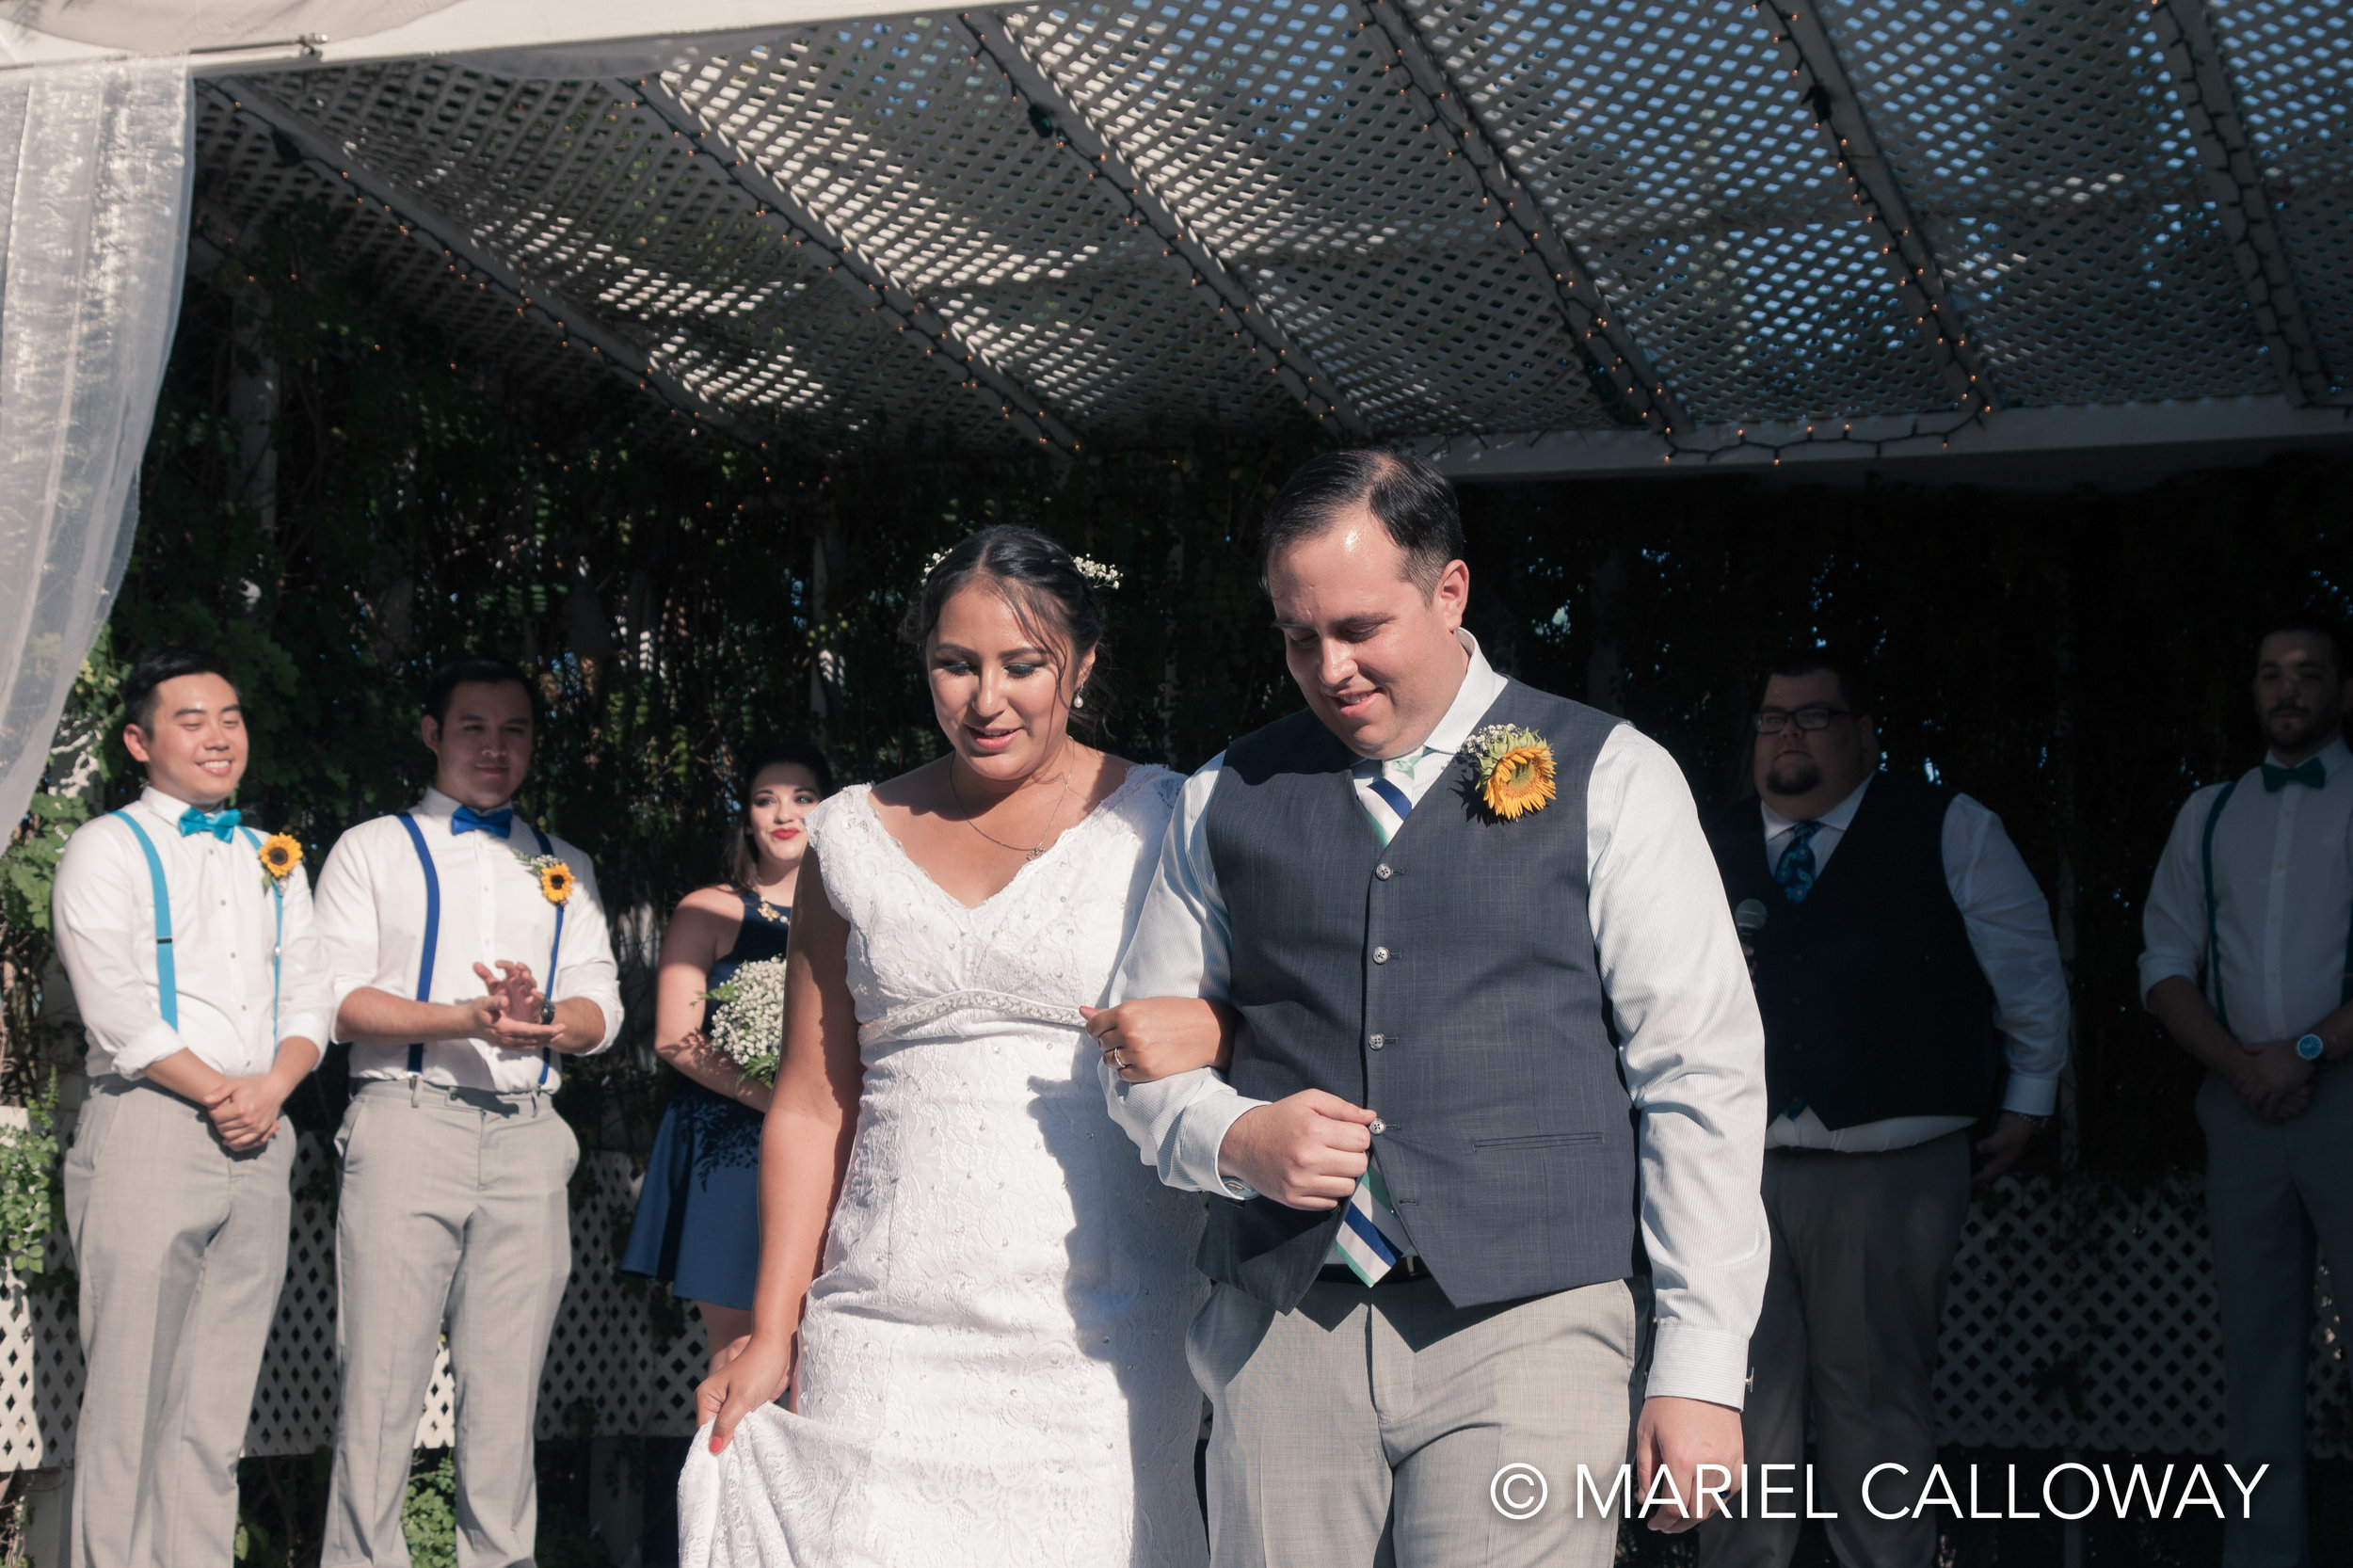 Mariel-Calloway-Wedding-Photographer-Los-Angeles-NatRory-15.jpg